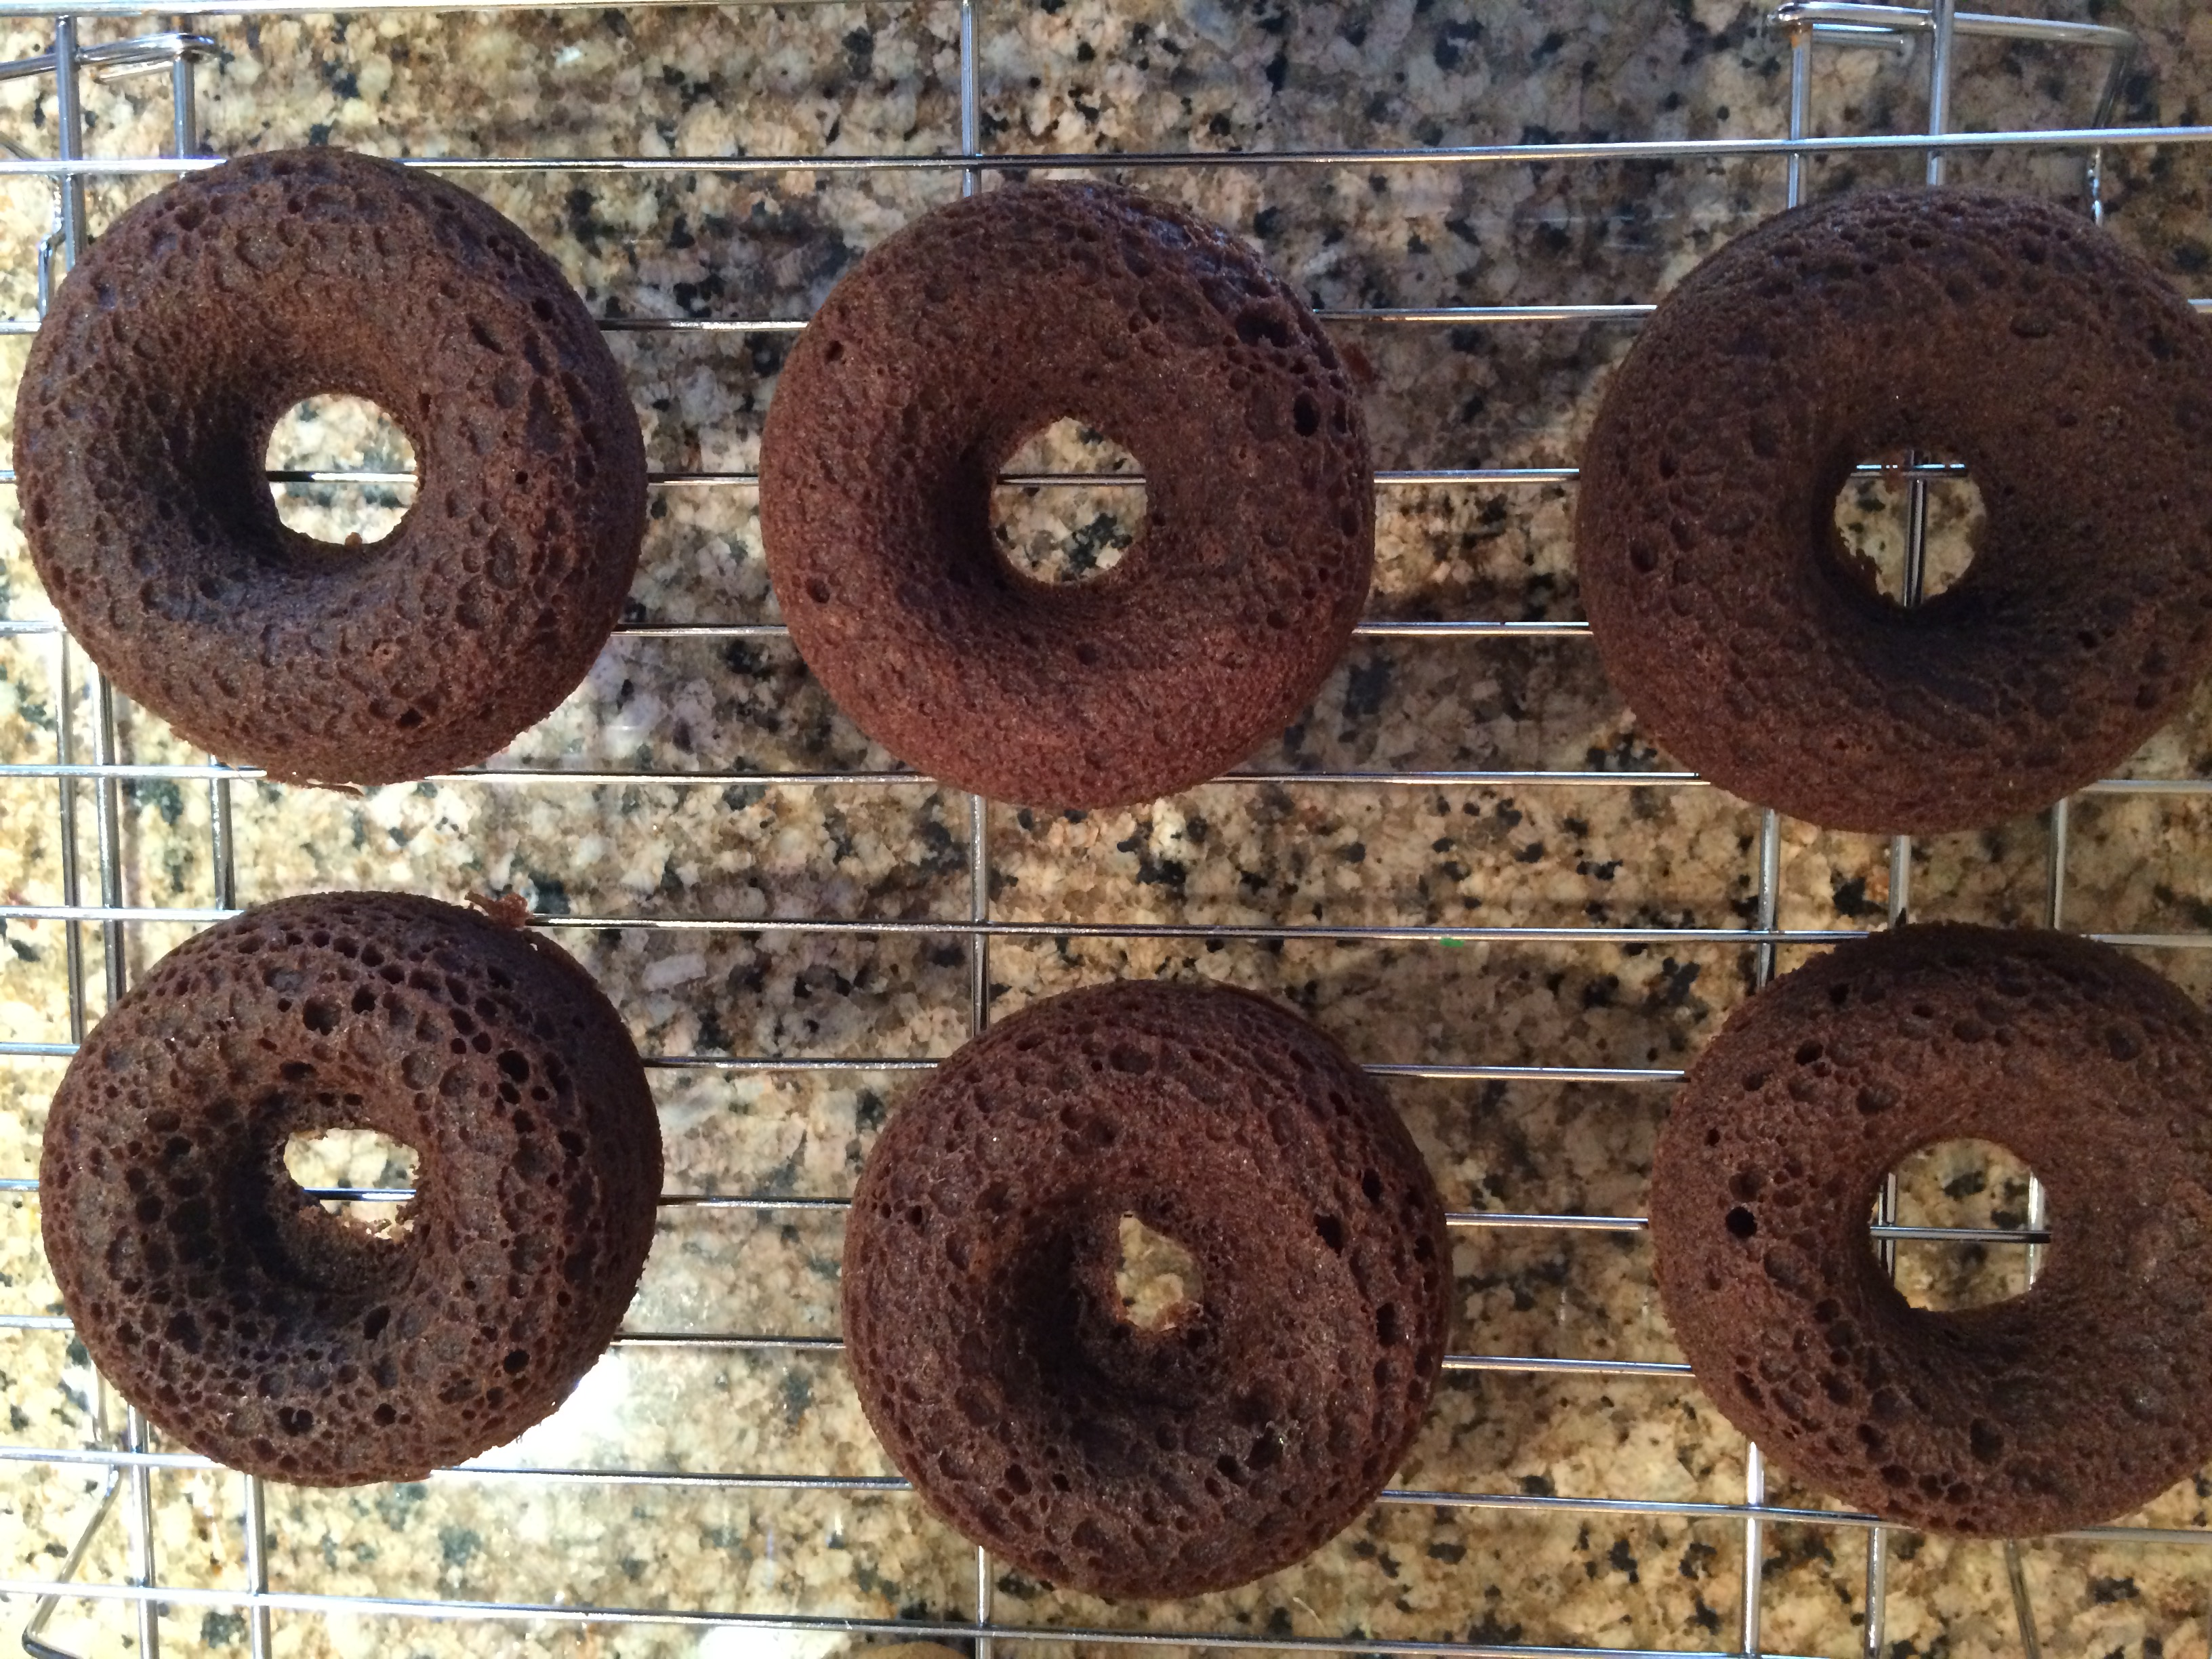 Paleo Baked Chocolate Donuts With Chocolate Frosting And Sprinkles ...